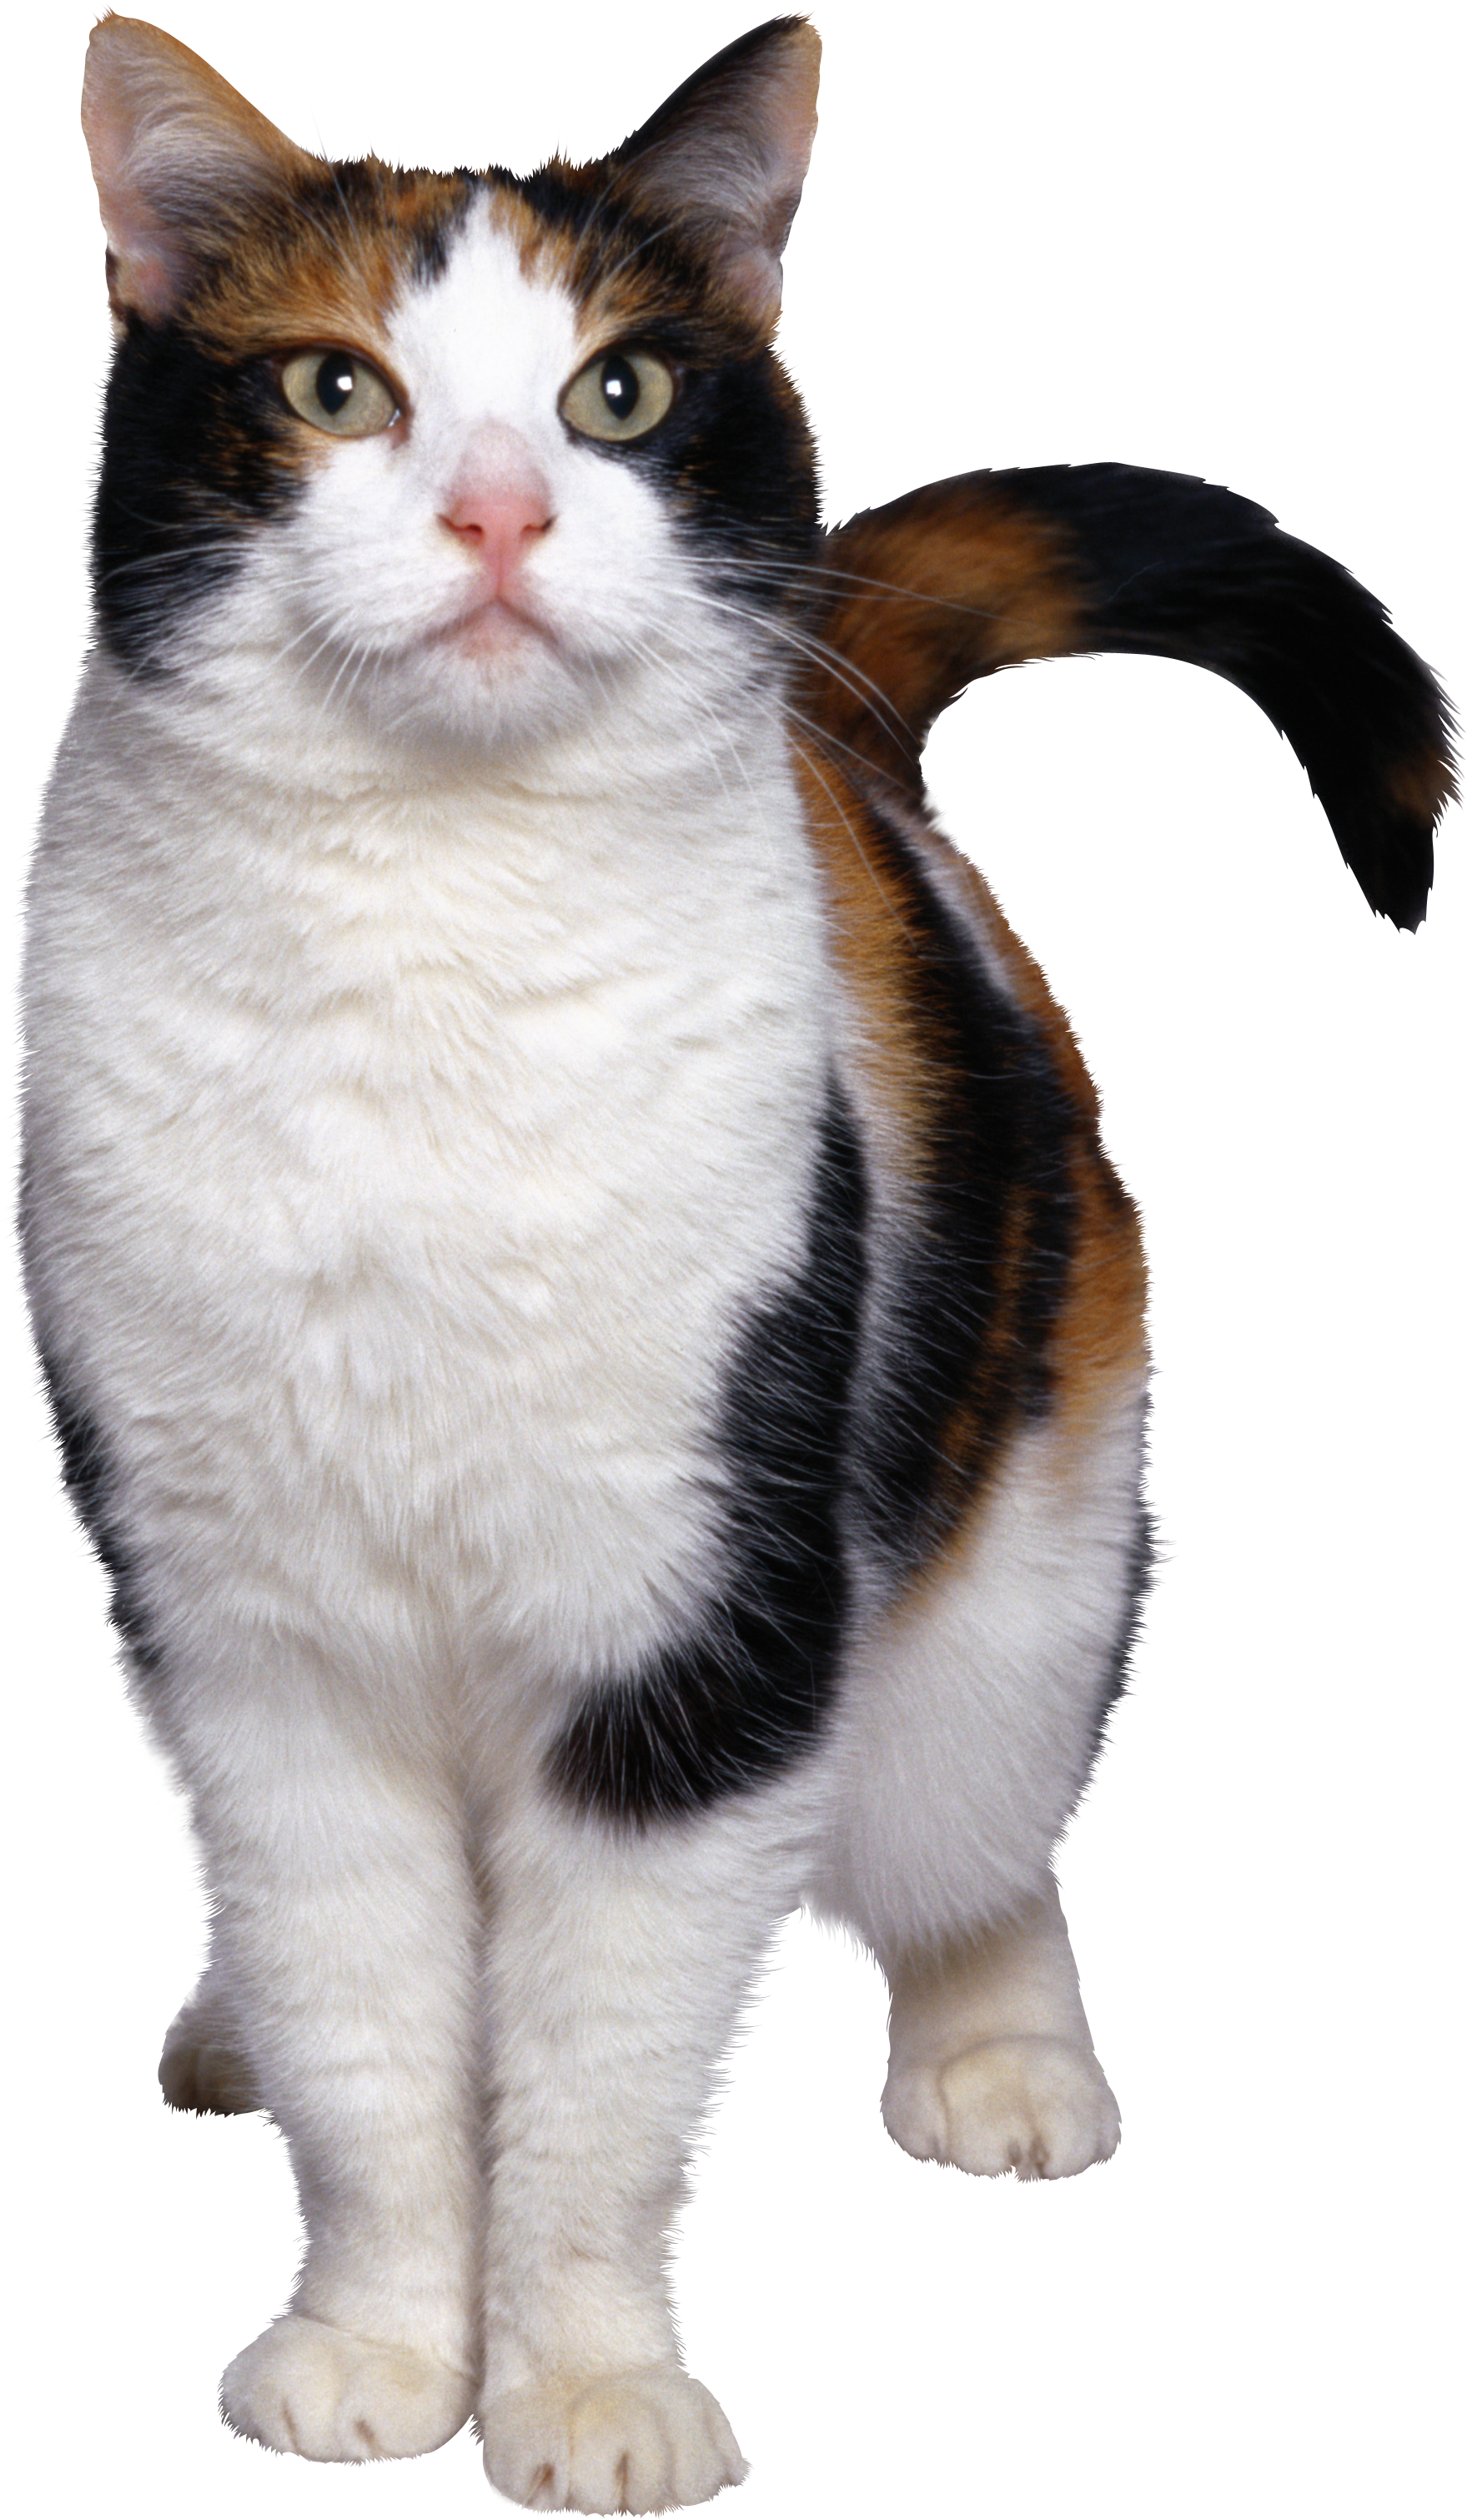 Download Png Image Cat Png Image Free Download Picture Kitten Cat Illustration Cats Free Cats